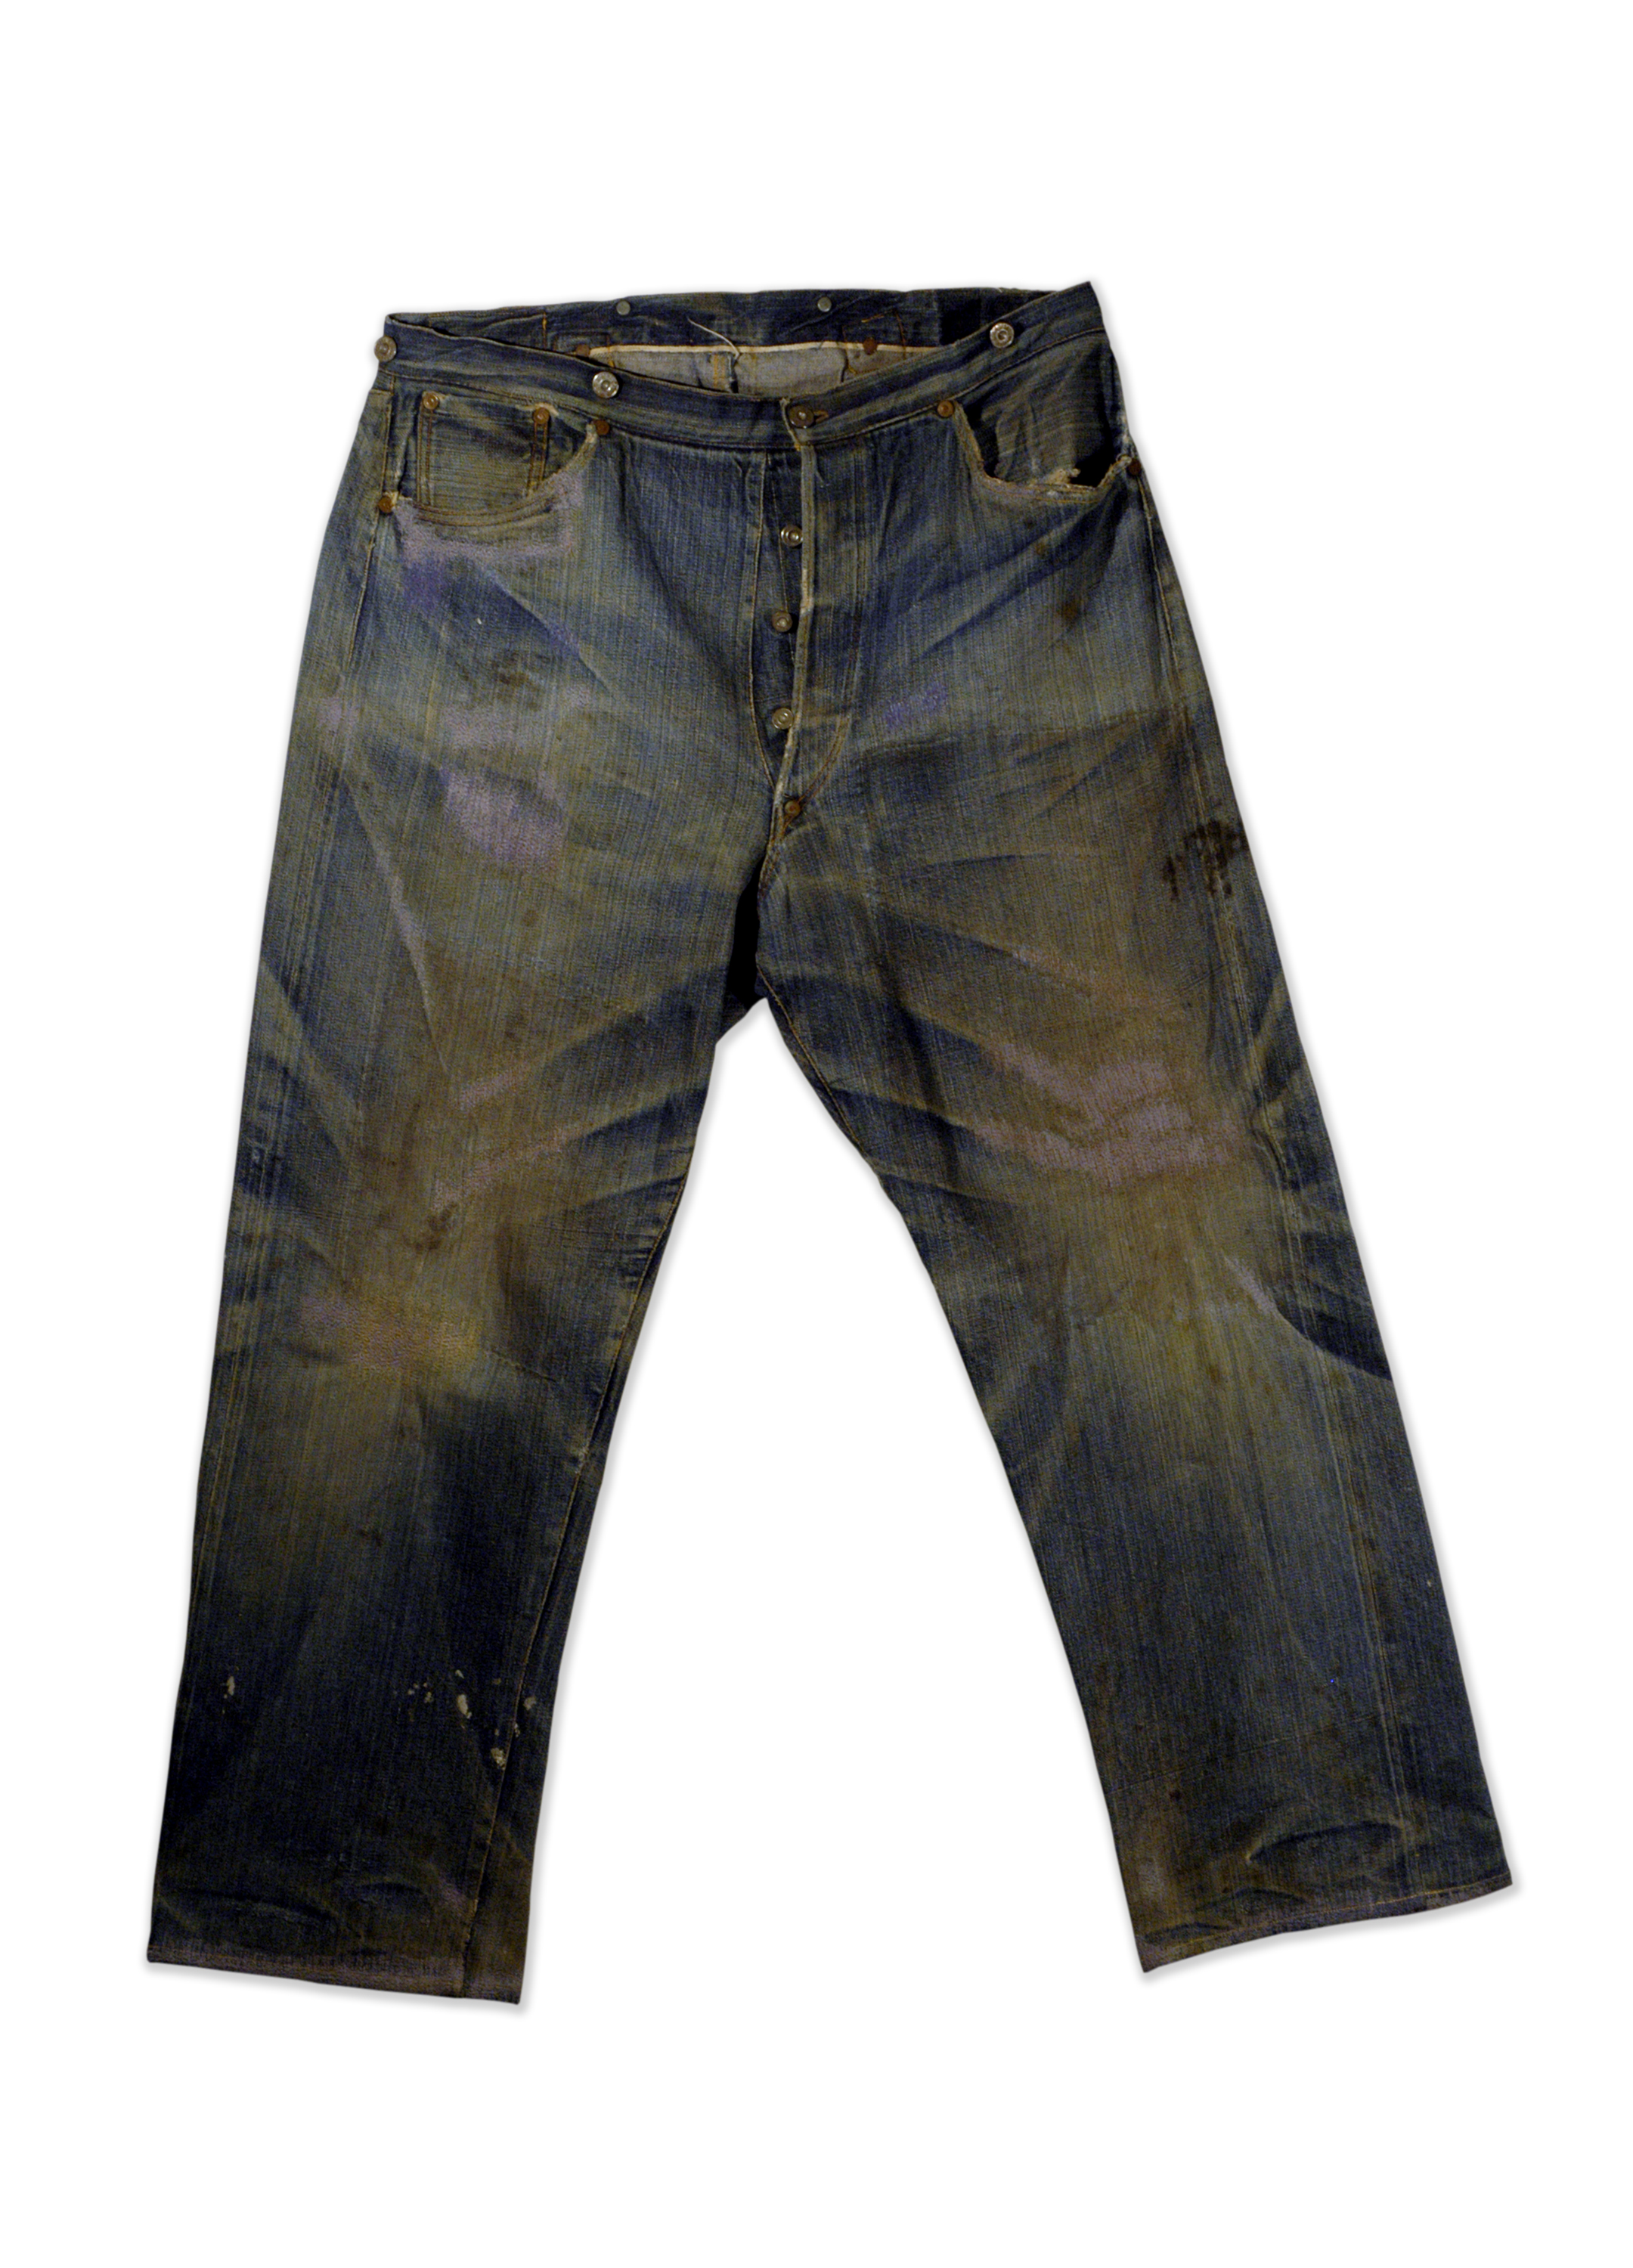 Tbt The World S Oldest Pair Of Pants Are 3 000 Years Old